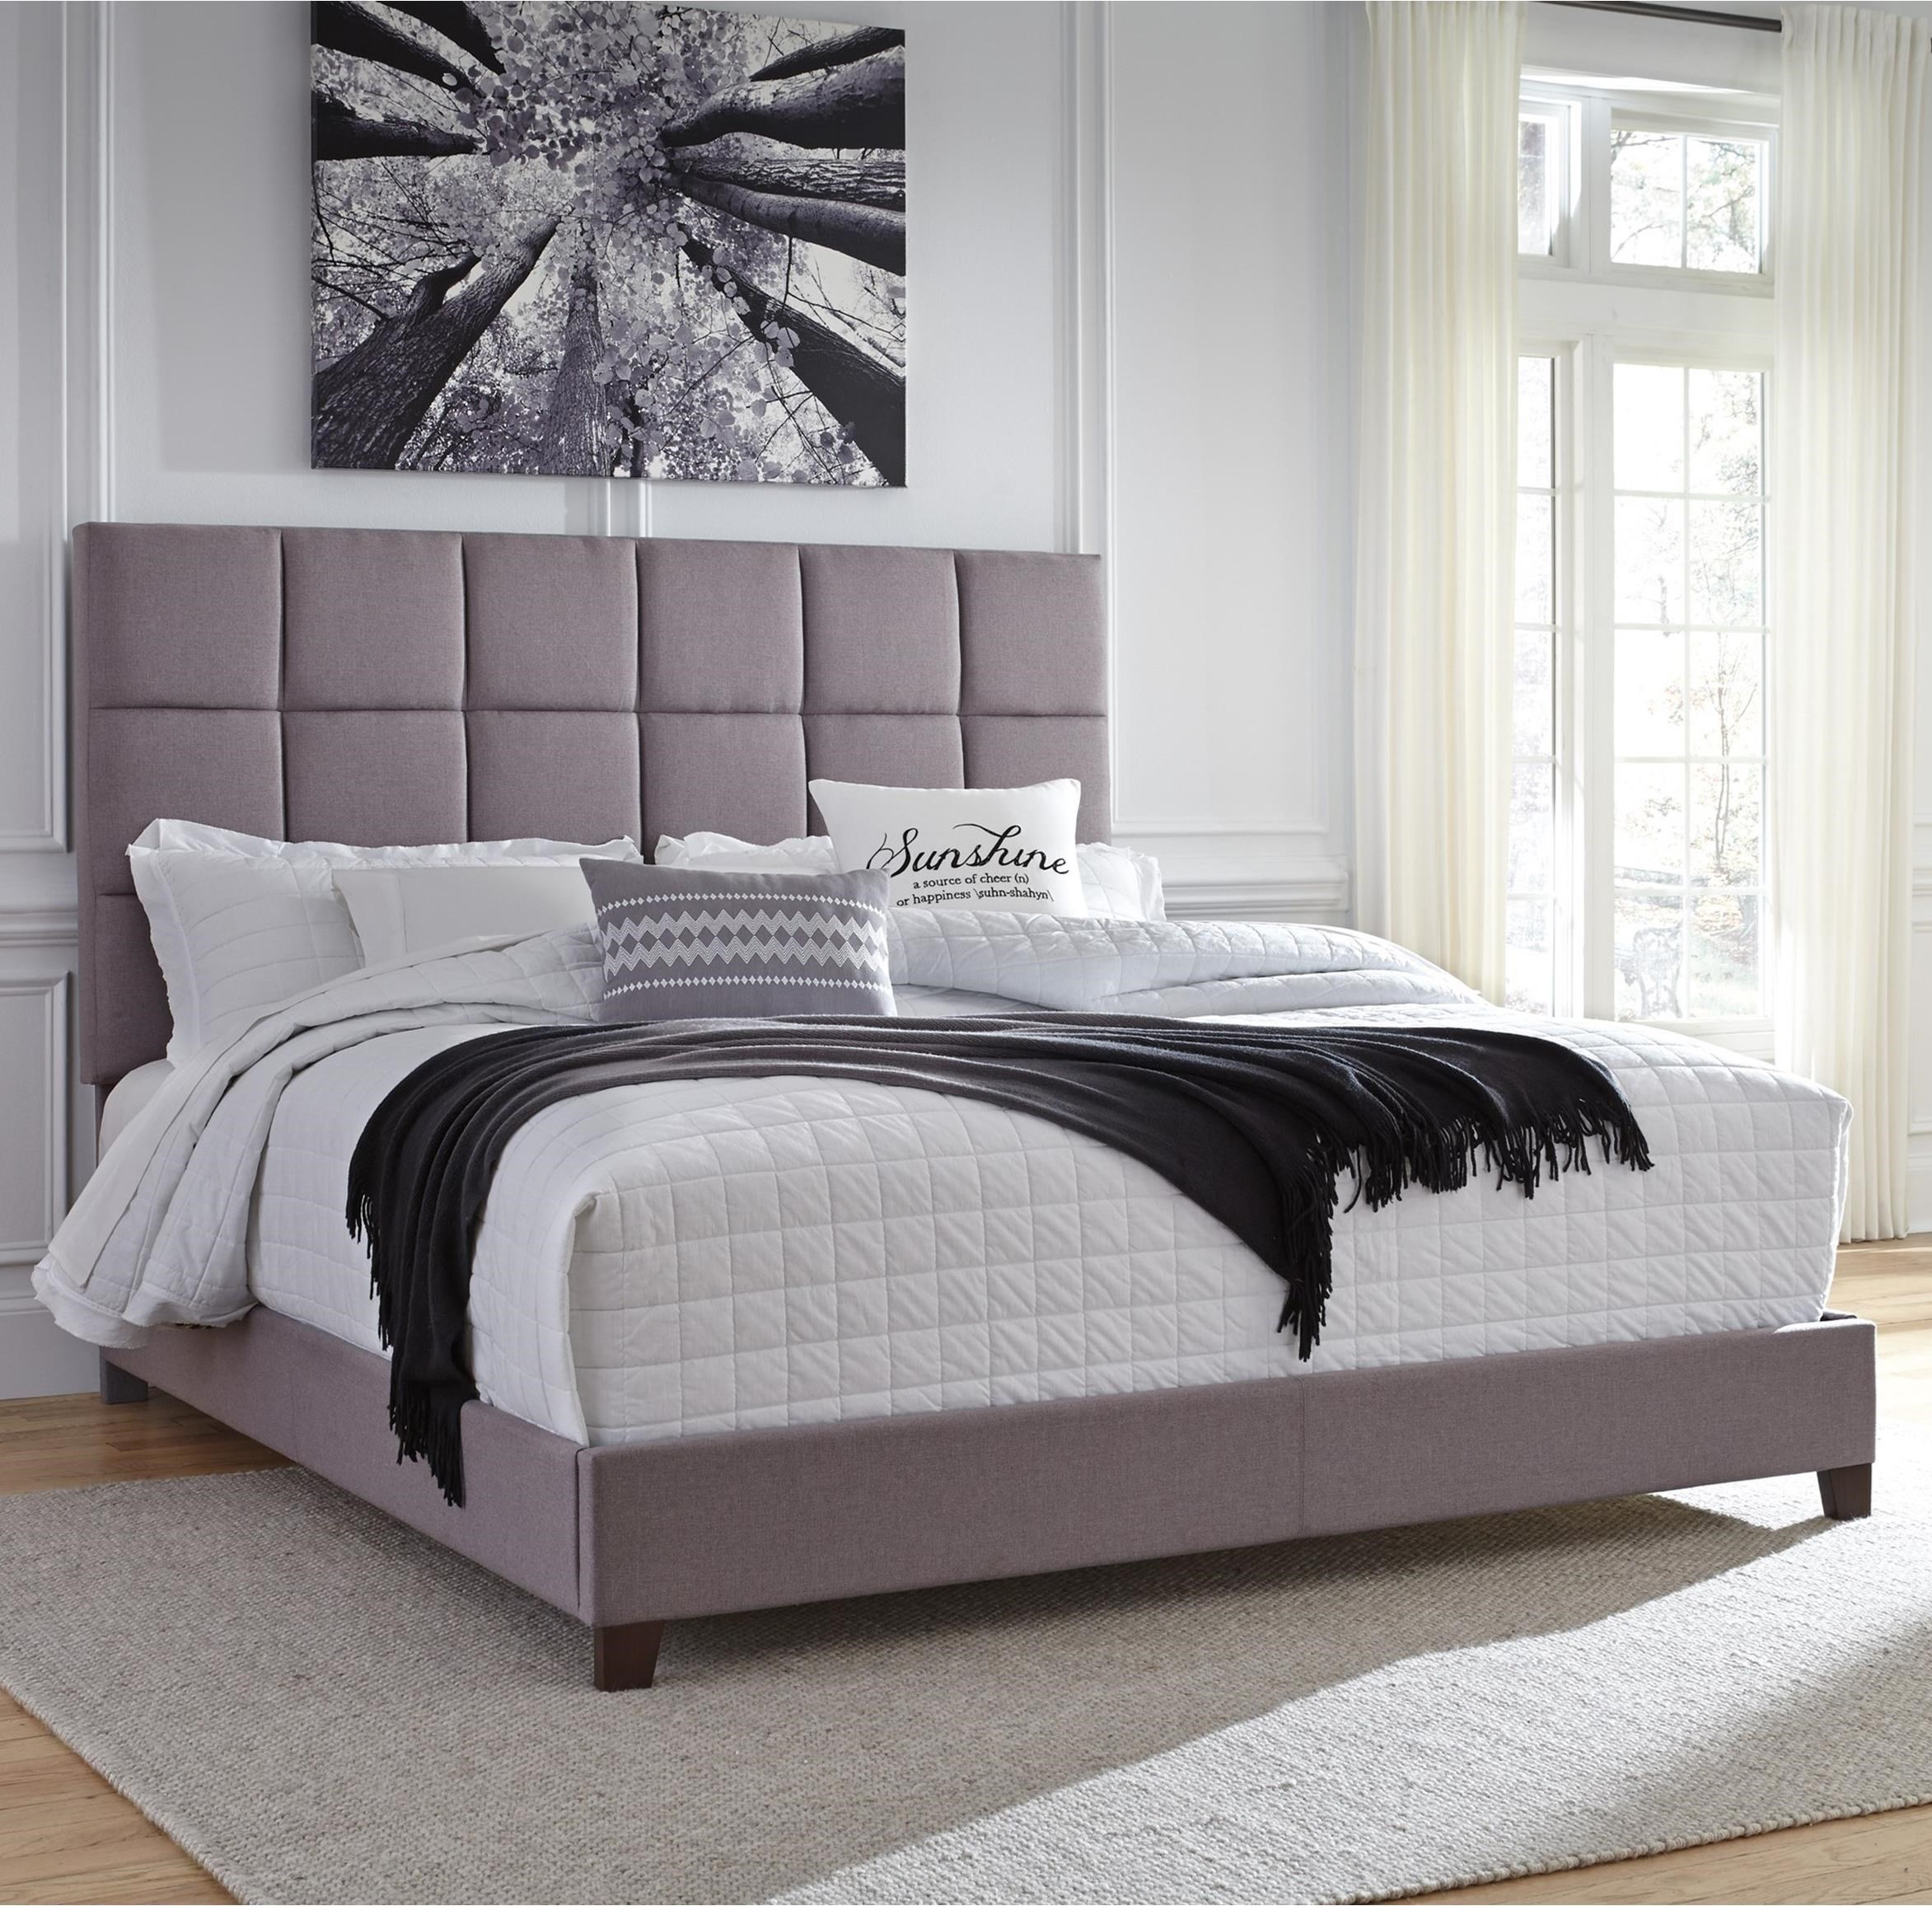 Signature Design By Ashley Dolante King Upholstered Bed In